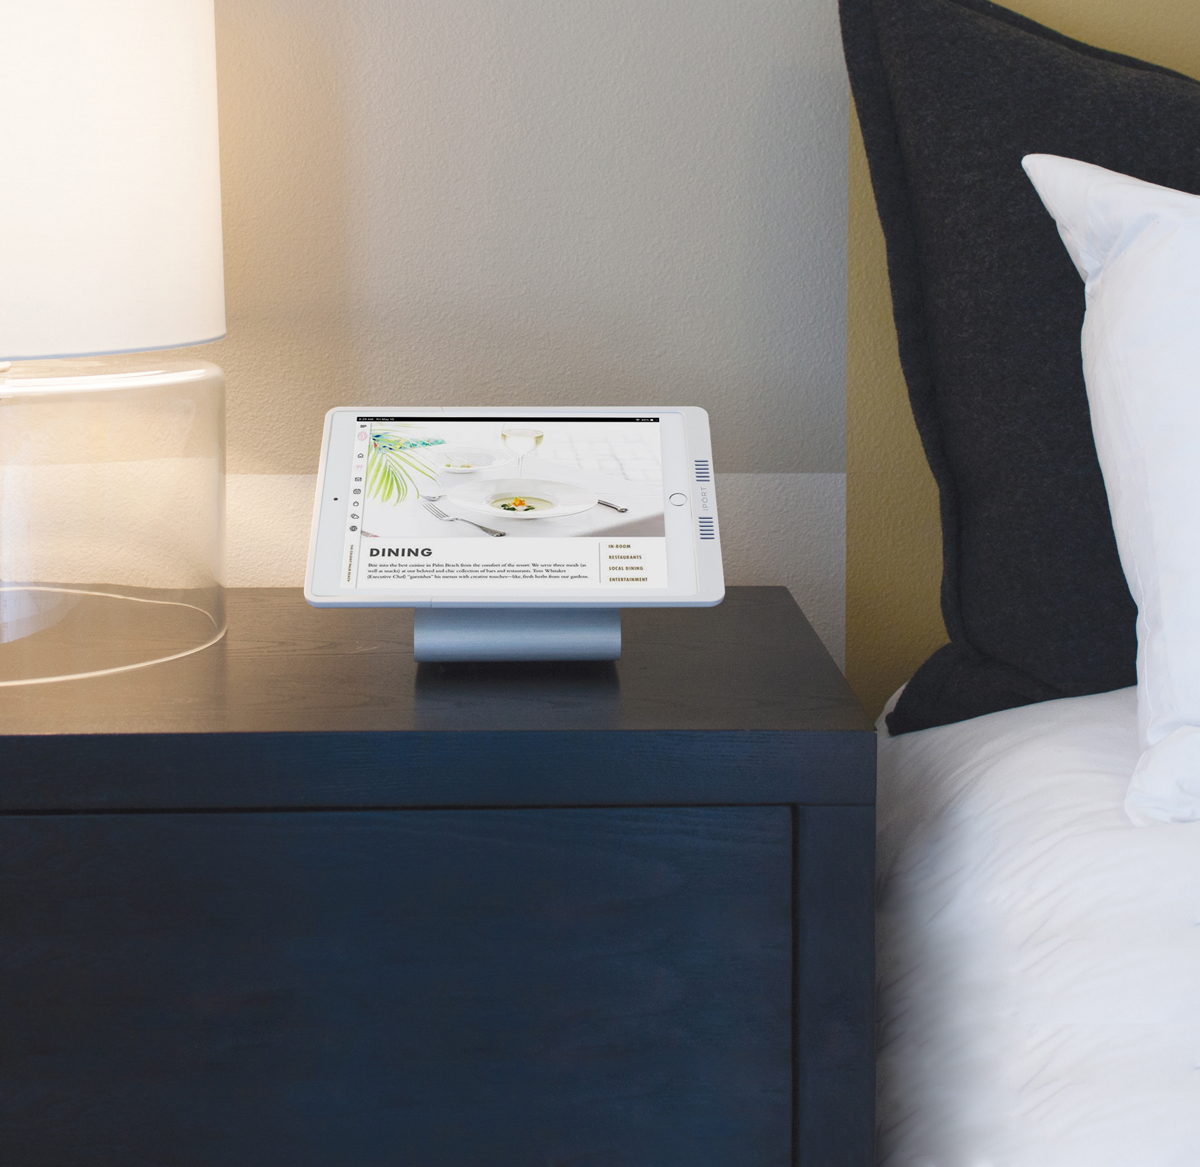 White iPad charging case with silver iPad charging station by IPORT on a bedside table in a hotel room.